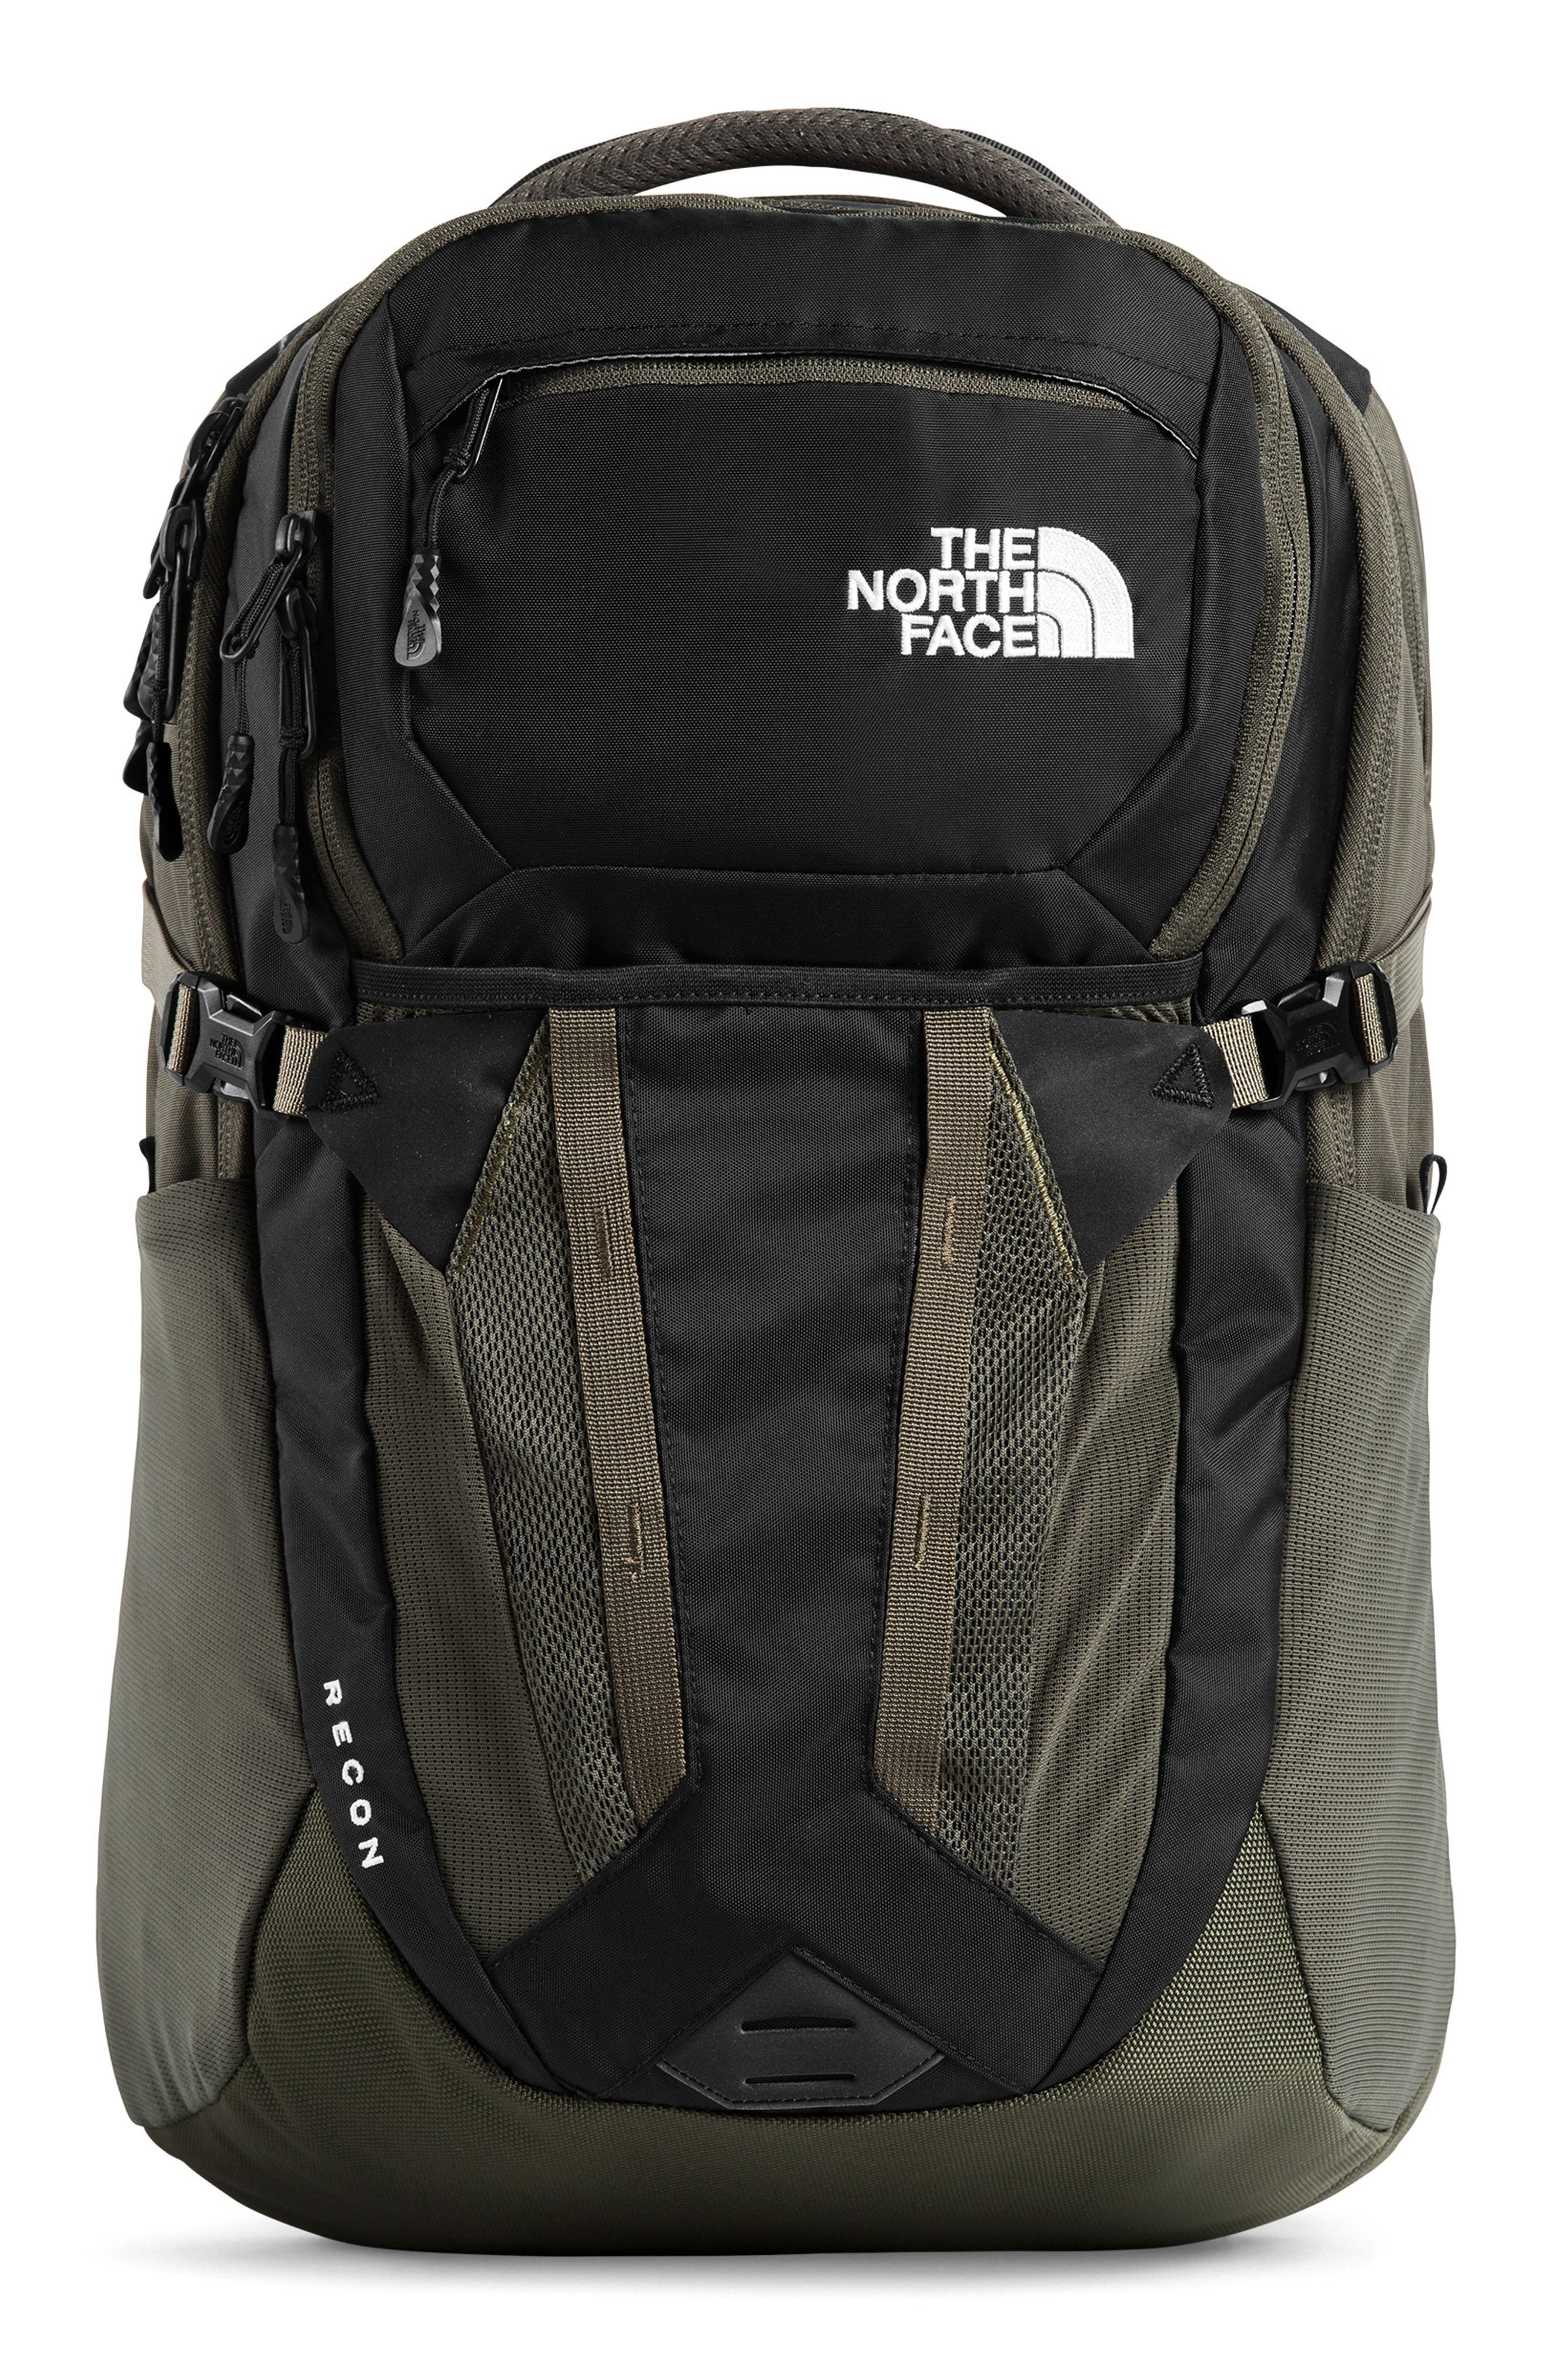 THE NORTH FACE Recon Backpack, Main, color, TNF BLACK/ NEW TAUPE GREEN